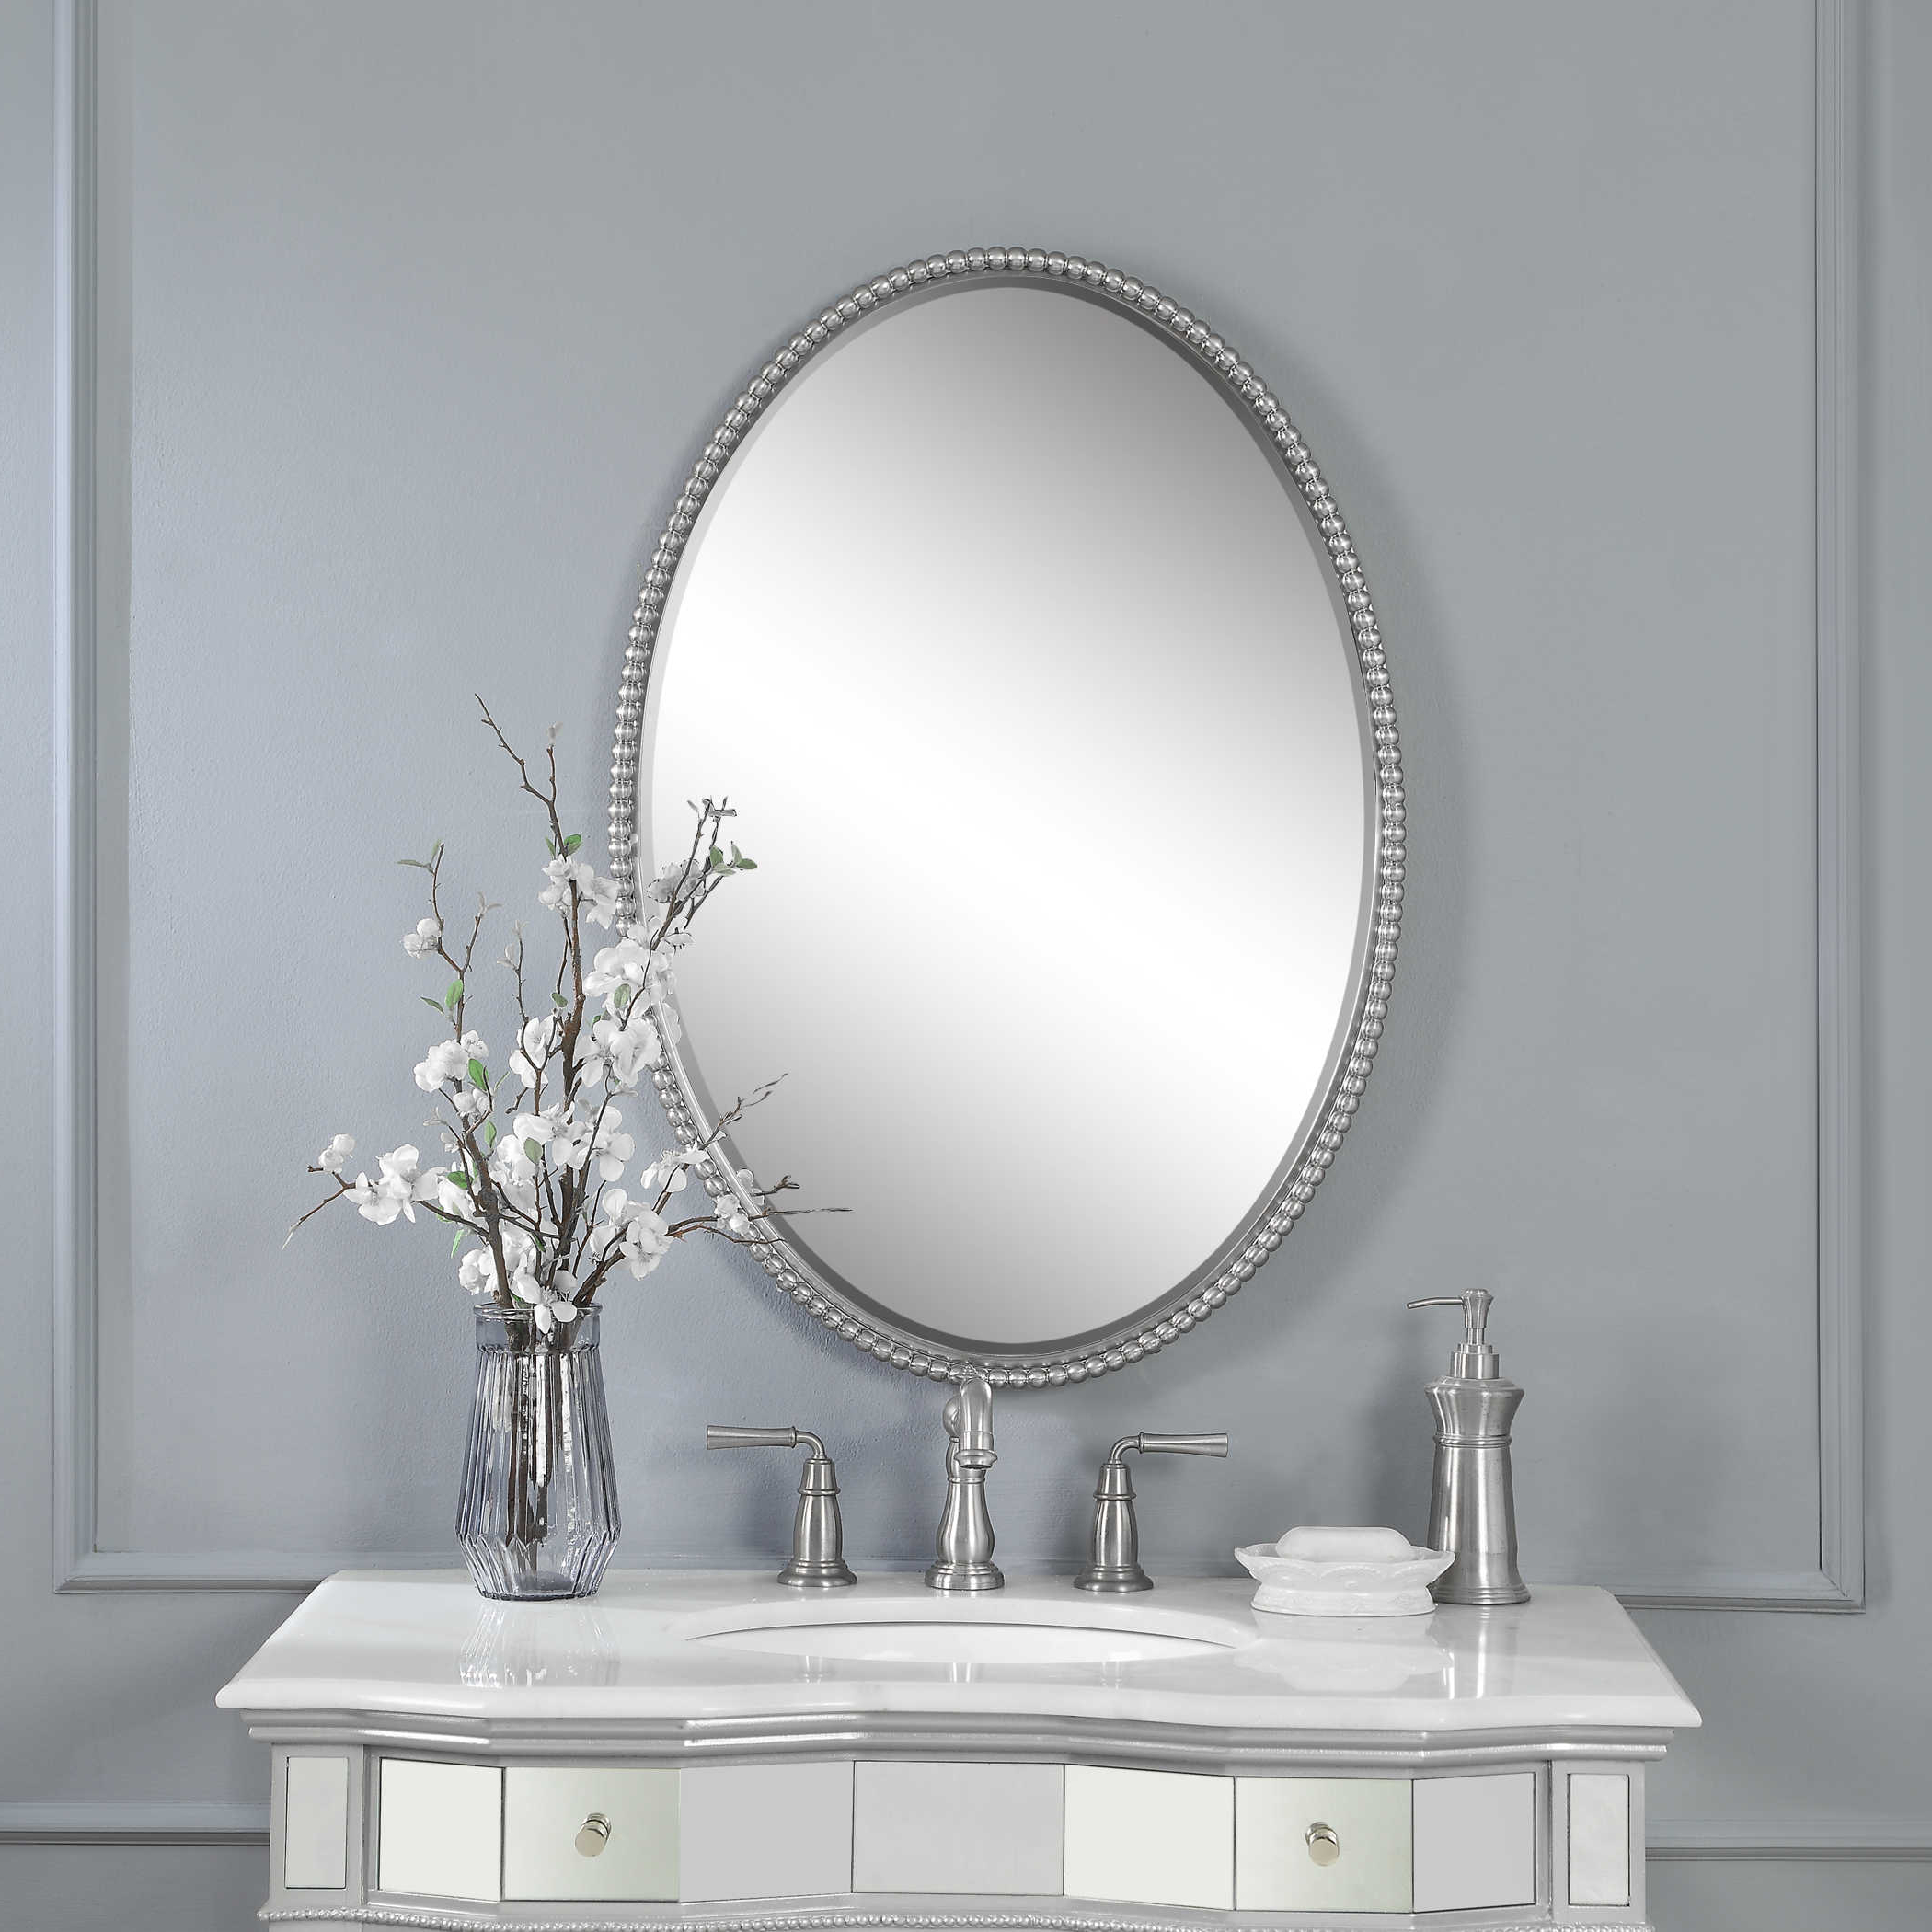 Uttermost Sherise Brushed Nickel Oval Mirror For Well Liked Brushed Nickel Wall Mirrors (Gallery 14 of 14)